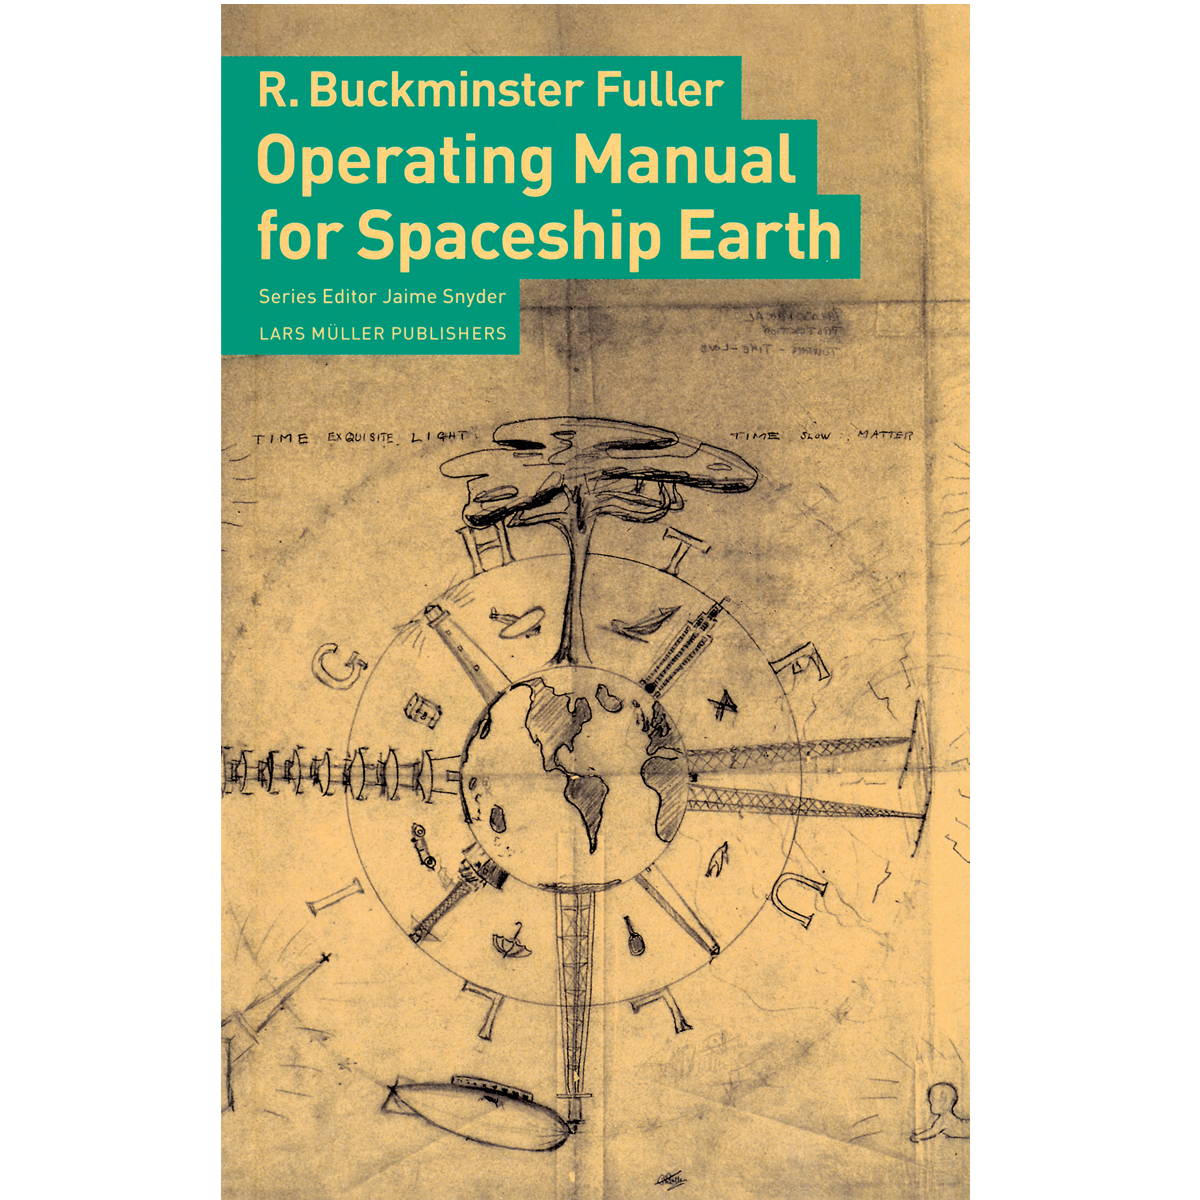 Operating Manual for Spaceship